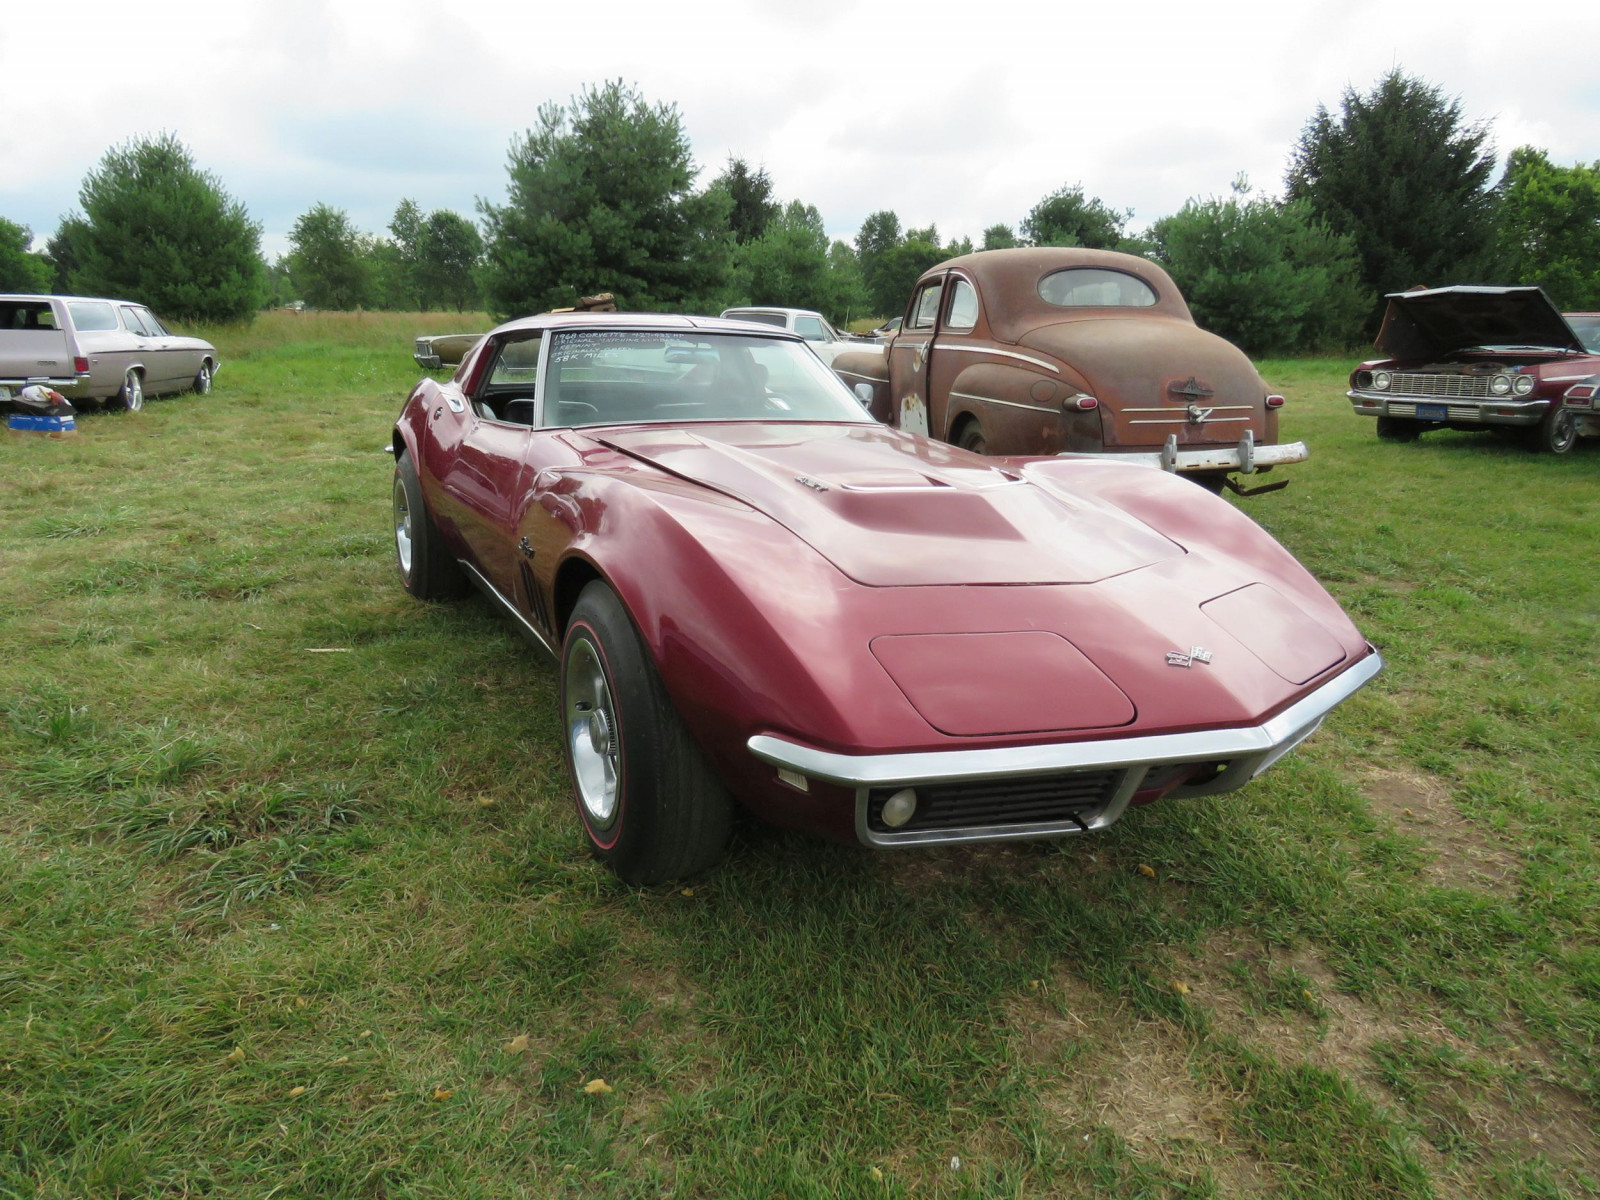 1968 Chevrolet Corvette Stingray Coupe - Image 3